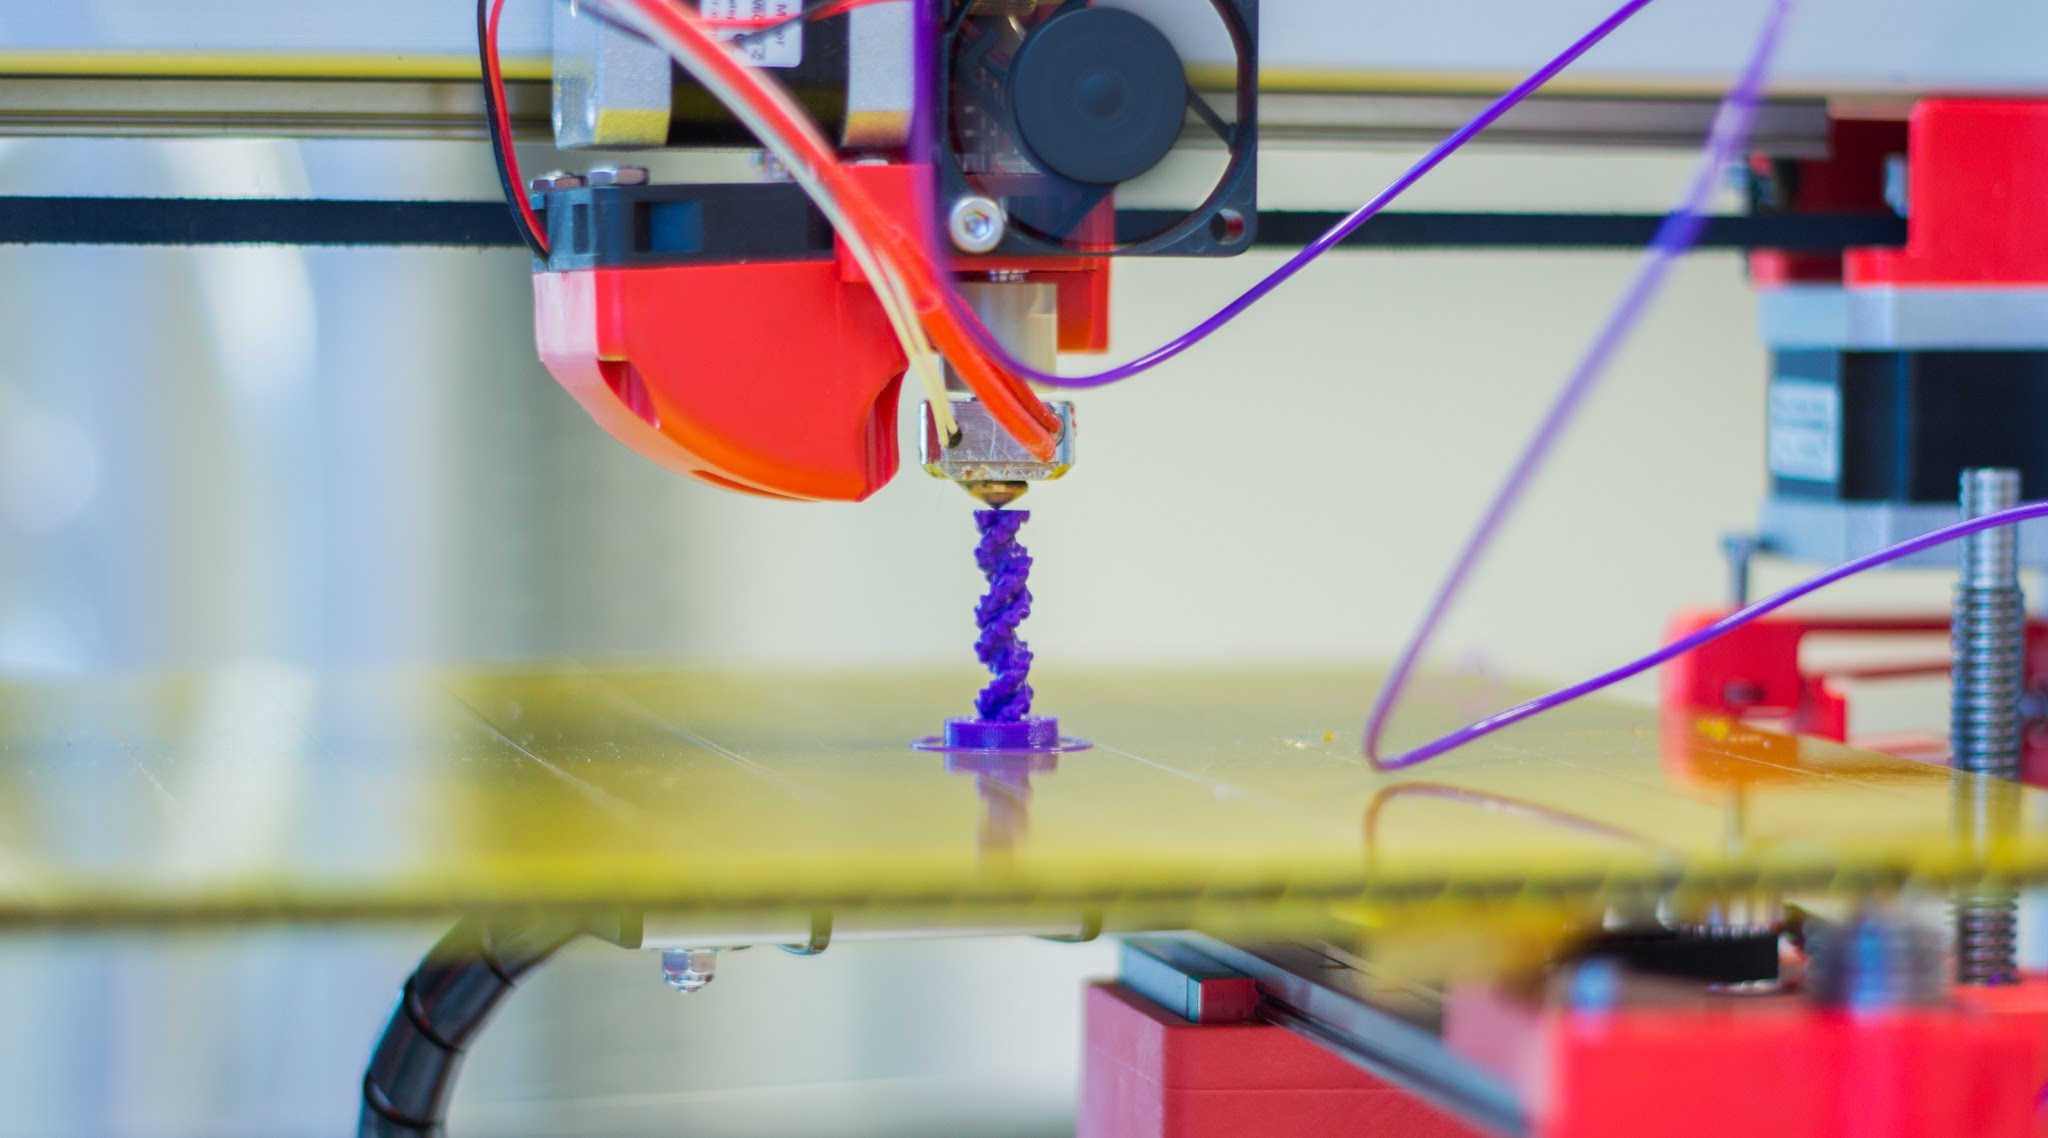 ARK Launches ETF Solely Focused on 3D Printing